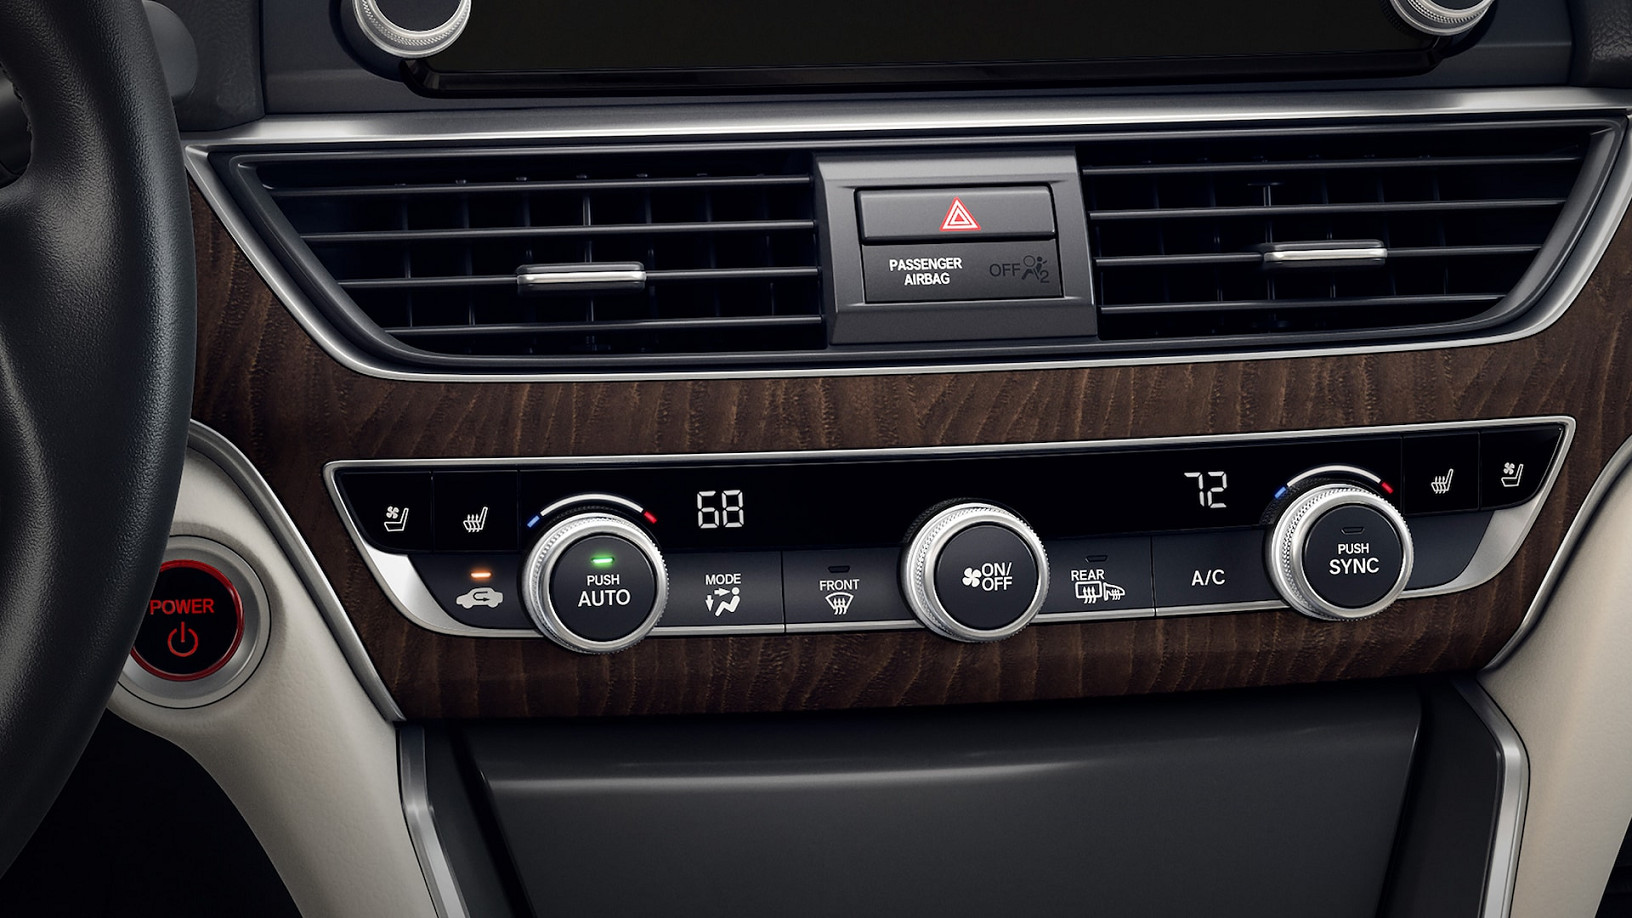 2020 Accord With Dual-Zone Climate Control